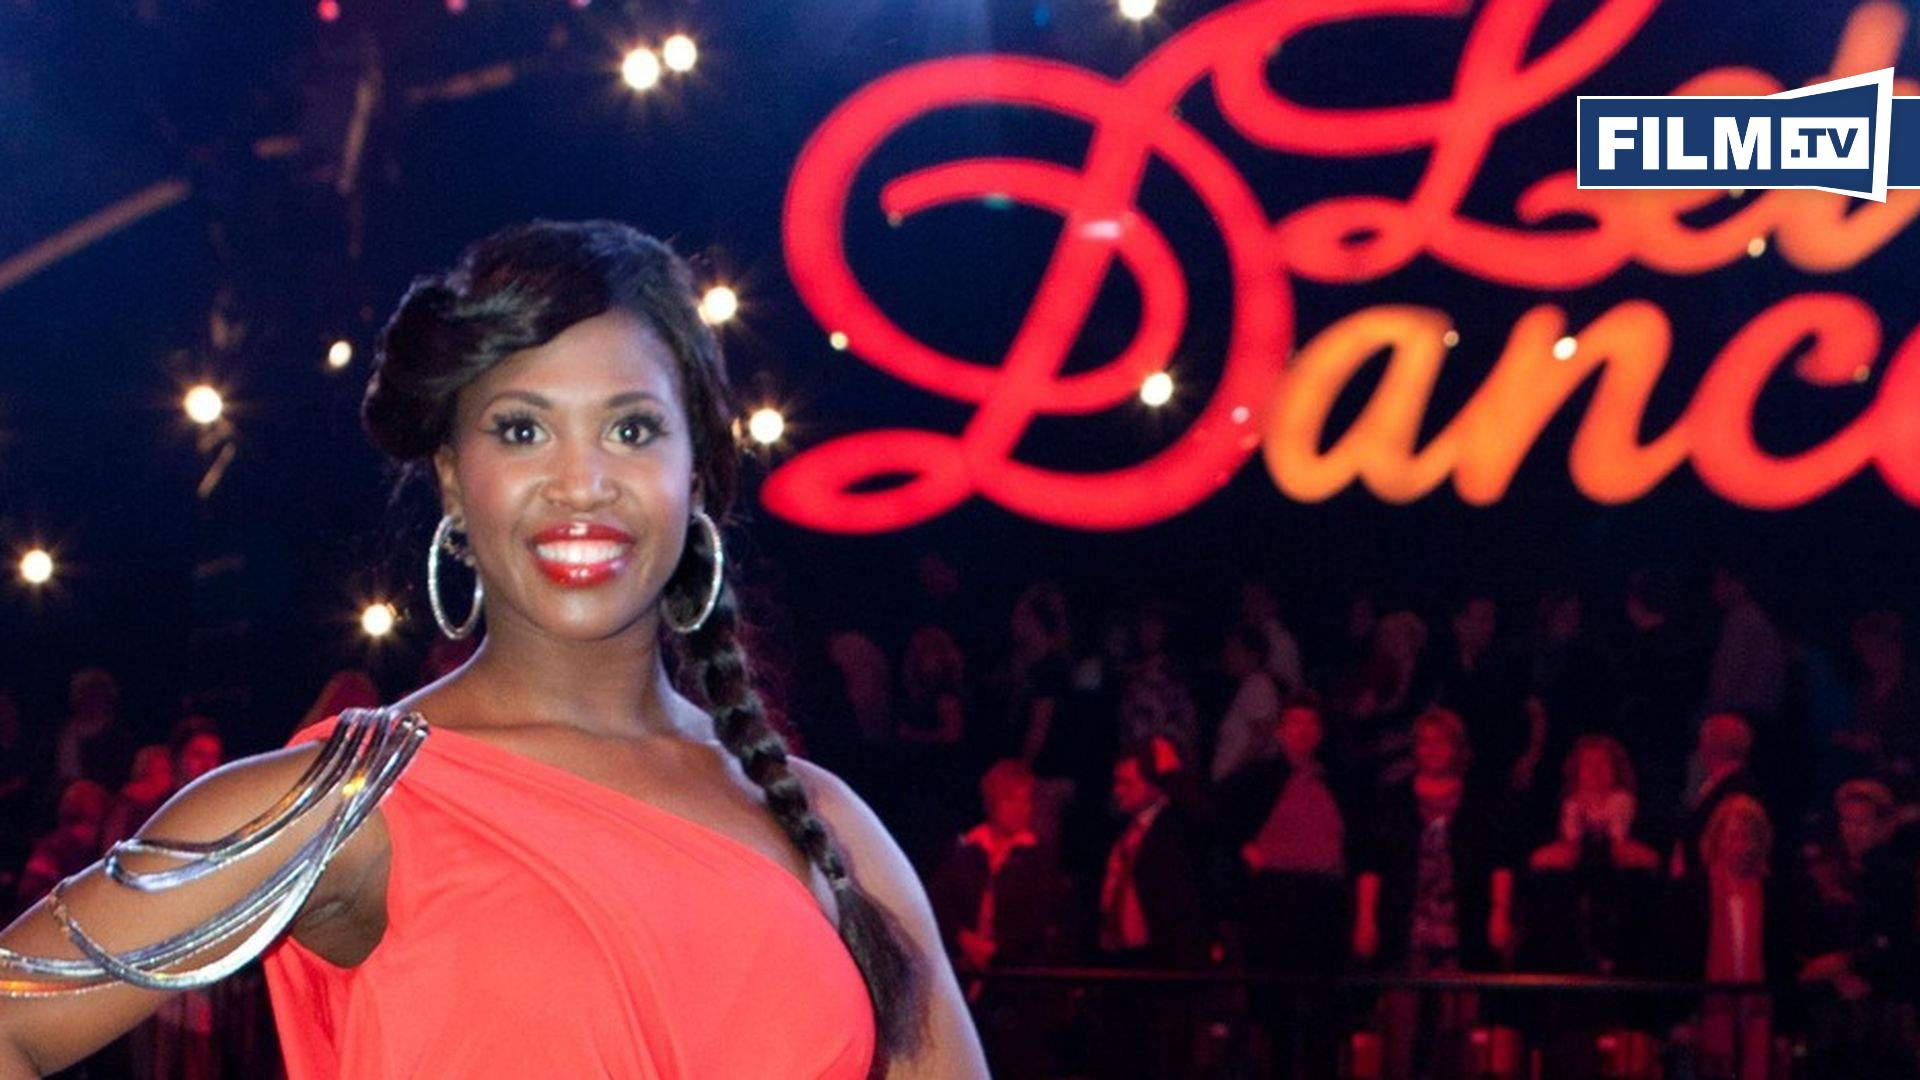 Motsi Mabuse Hat Geheiratet Trailerseite Film Tv